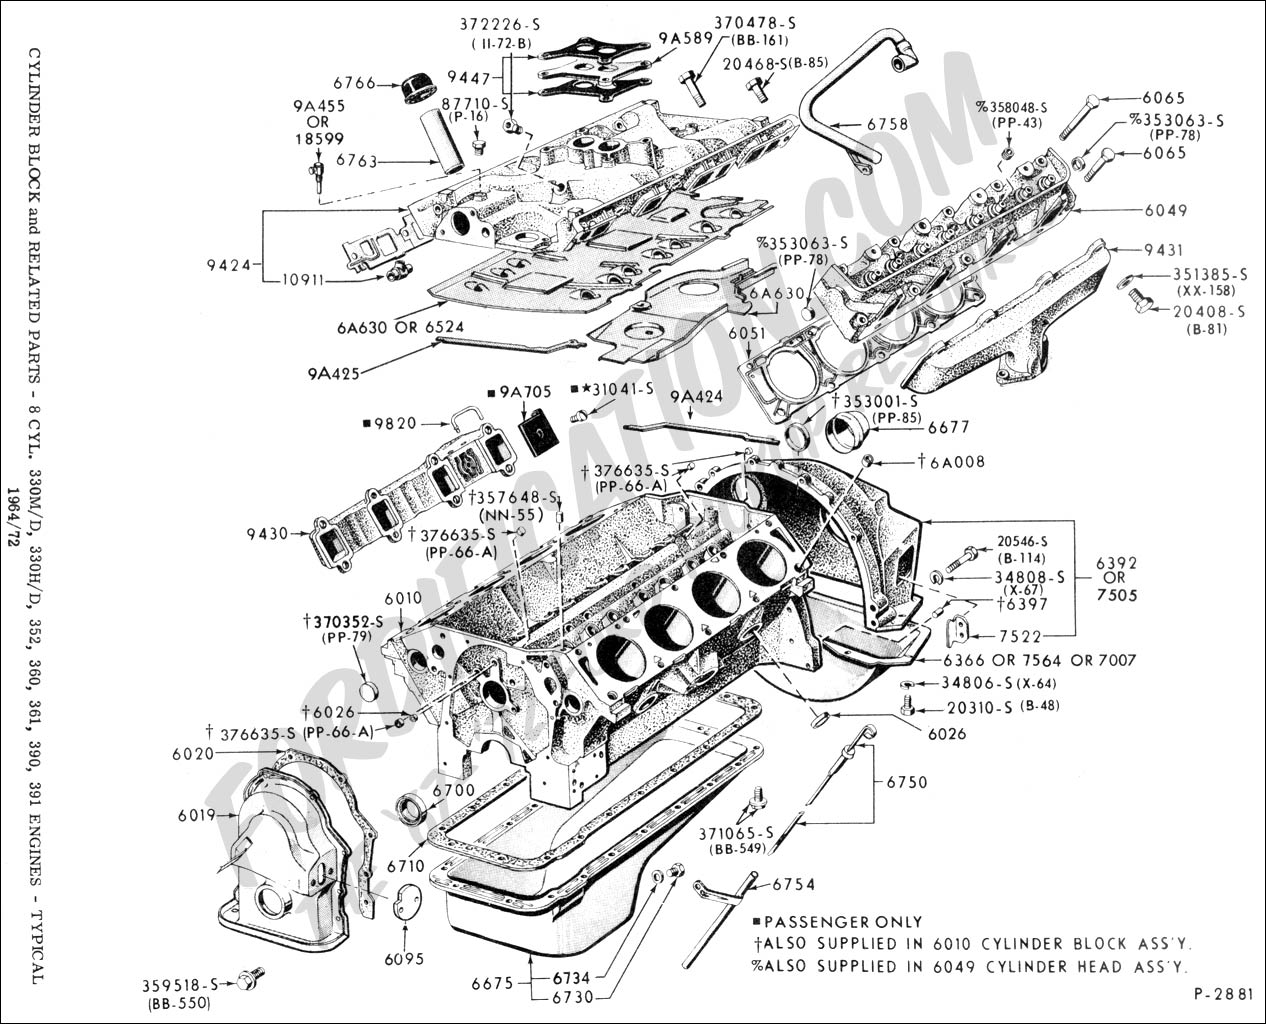 Diagrams 500375 Labeled Diagrams Of An Engine Block